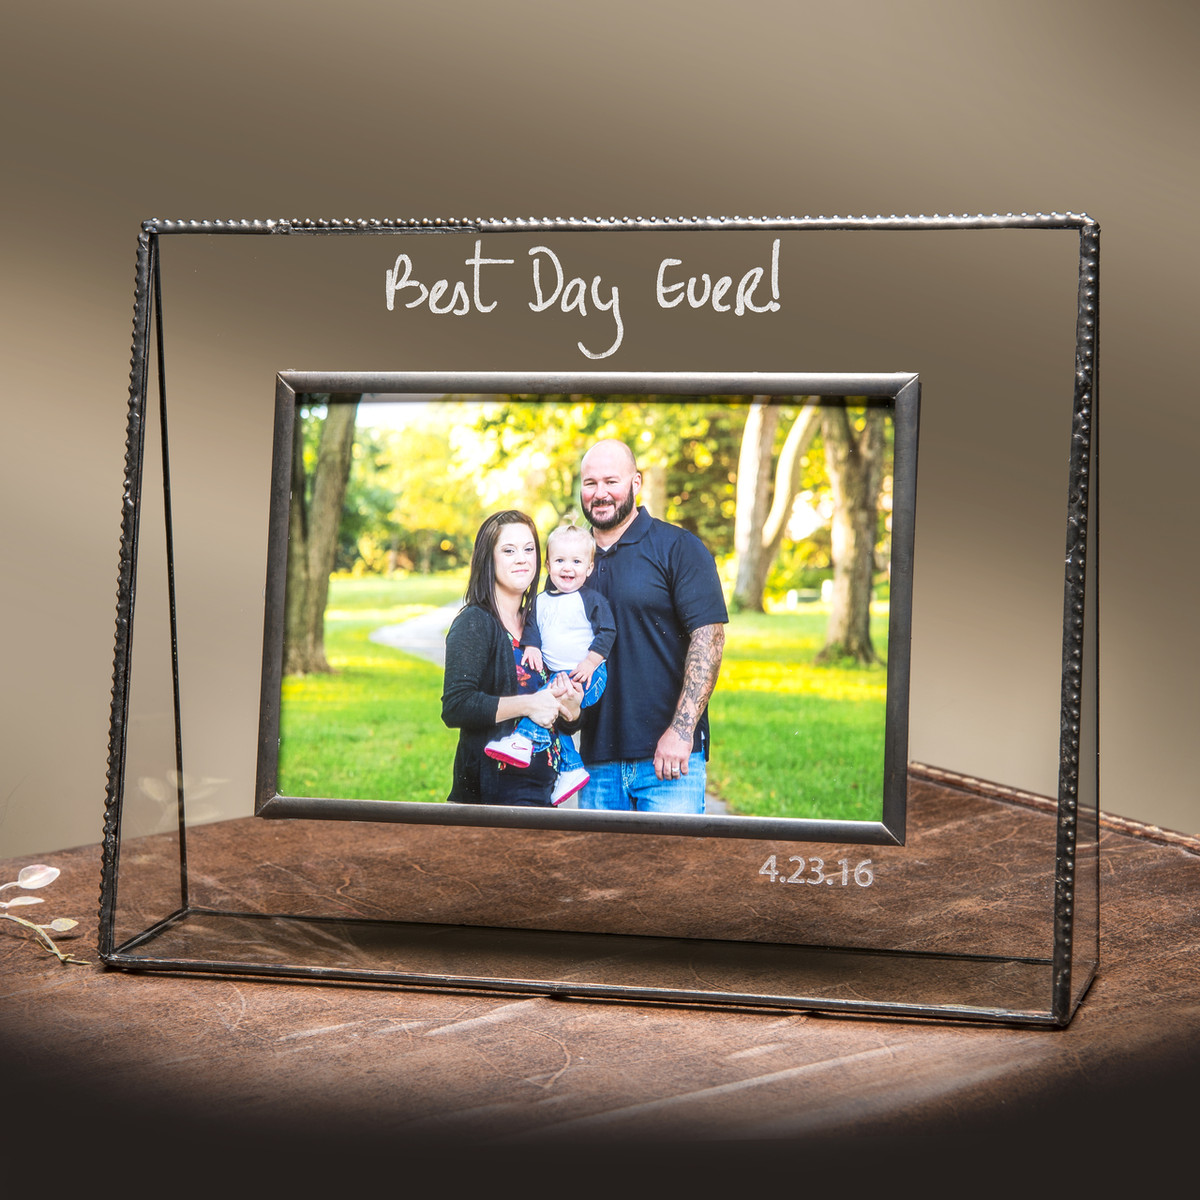 Best Day Ever Personalized Engraved Horizontal Or Vertical Glass Picture Frame